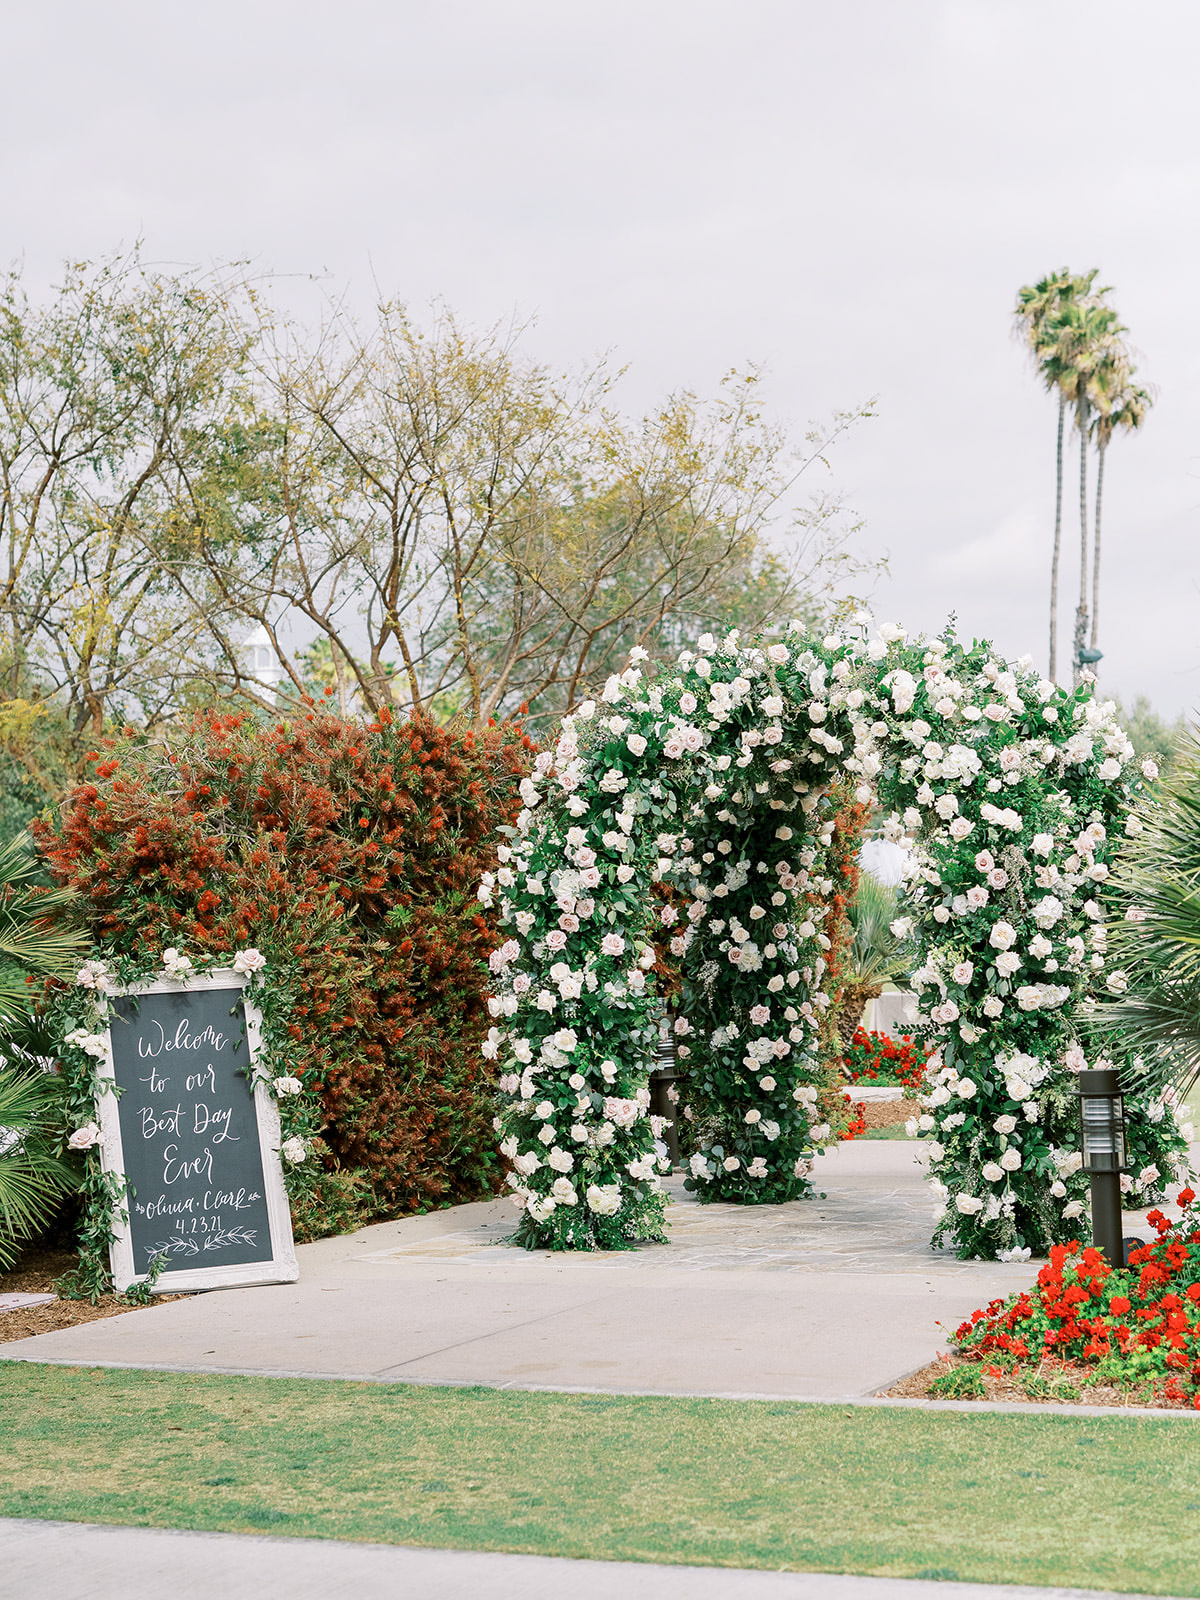 large rose arches at wedding entrance